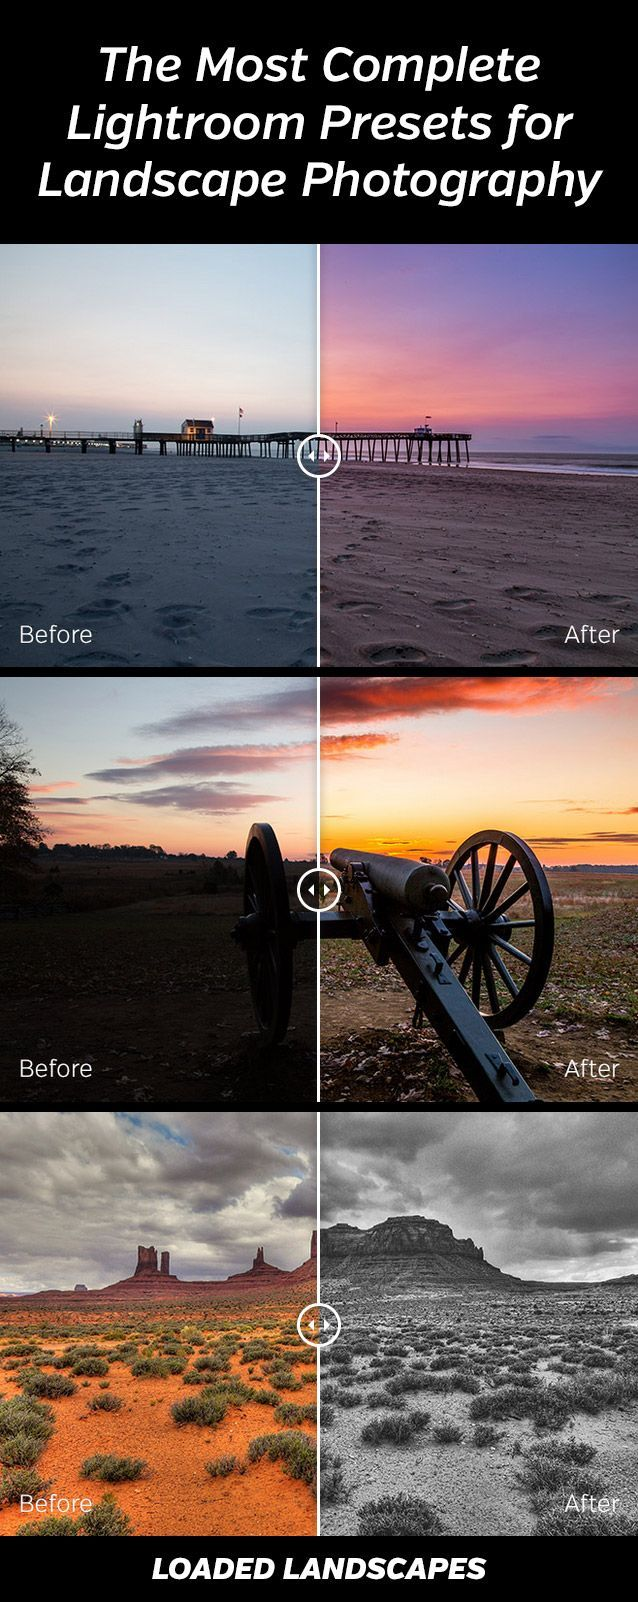 Landscape Legend Lightroom Presets - created specifically for landscapes and nature photos. 100 one-click presets plus extensive collection of workflow presets.